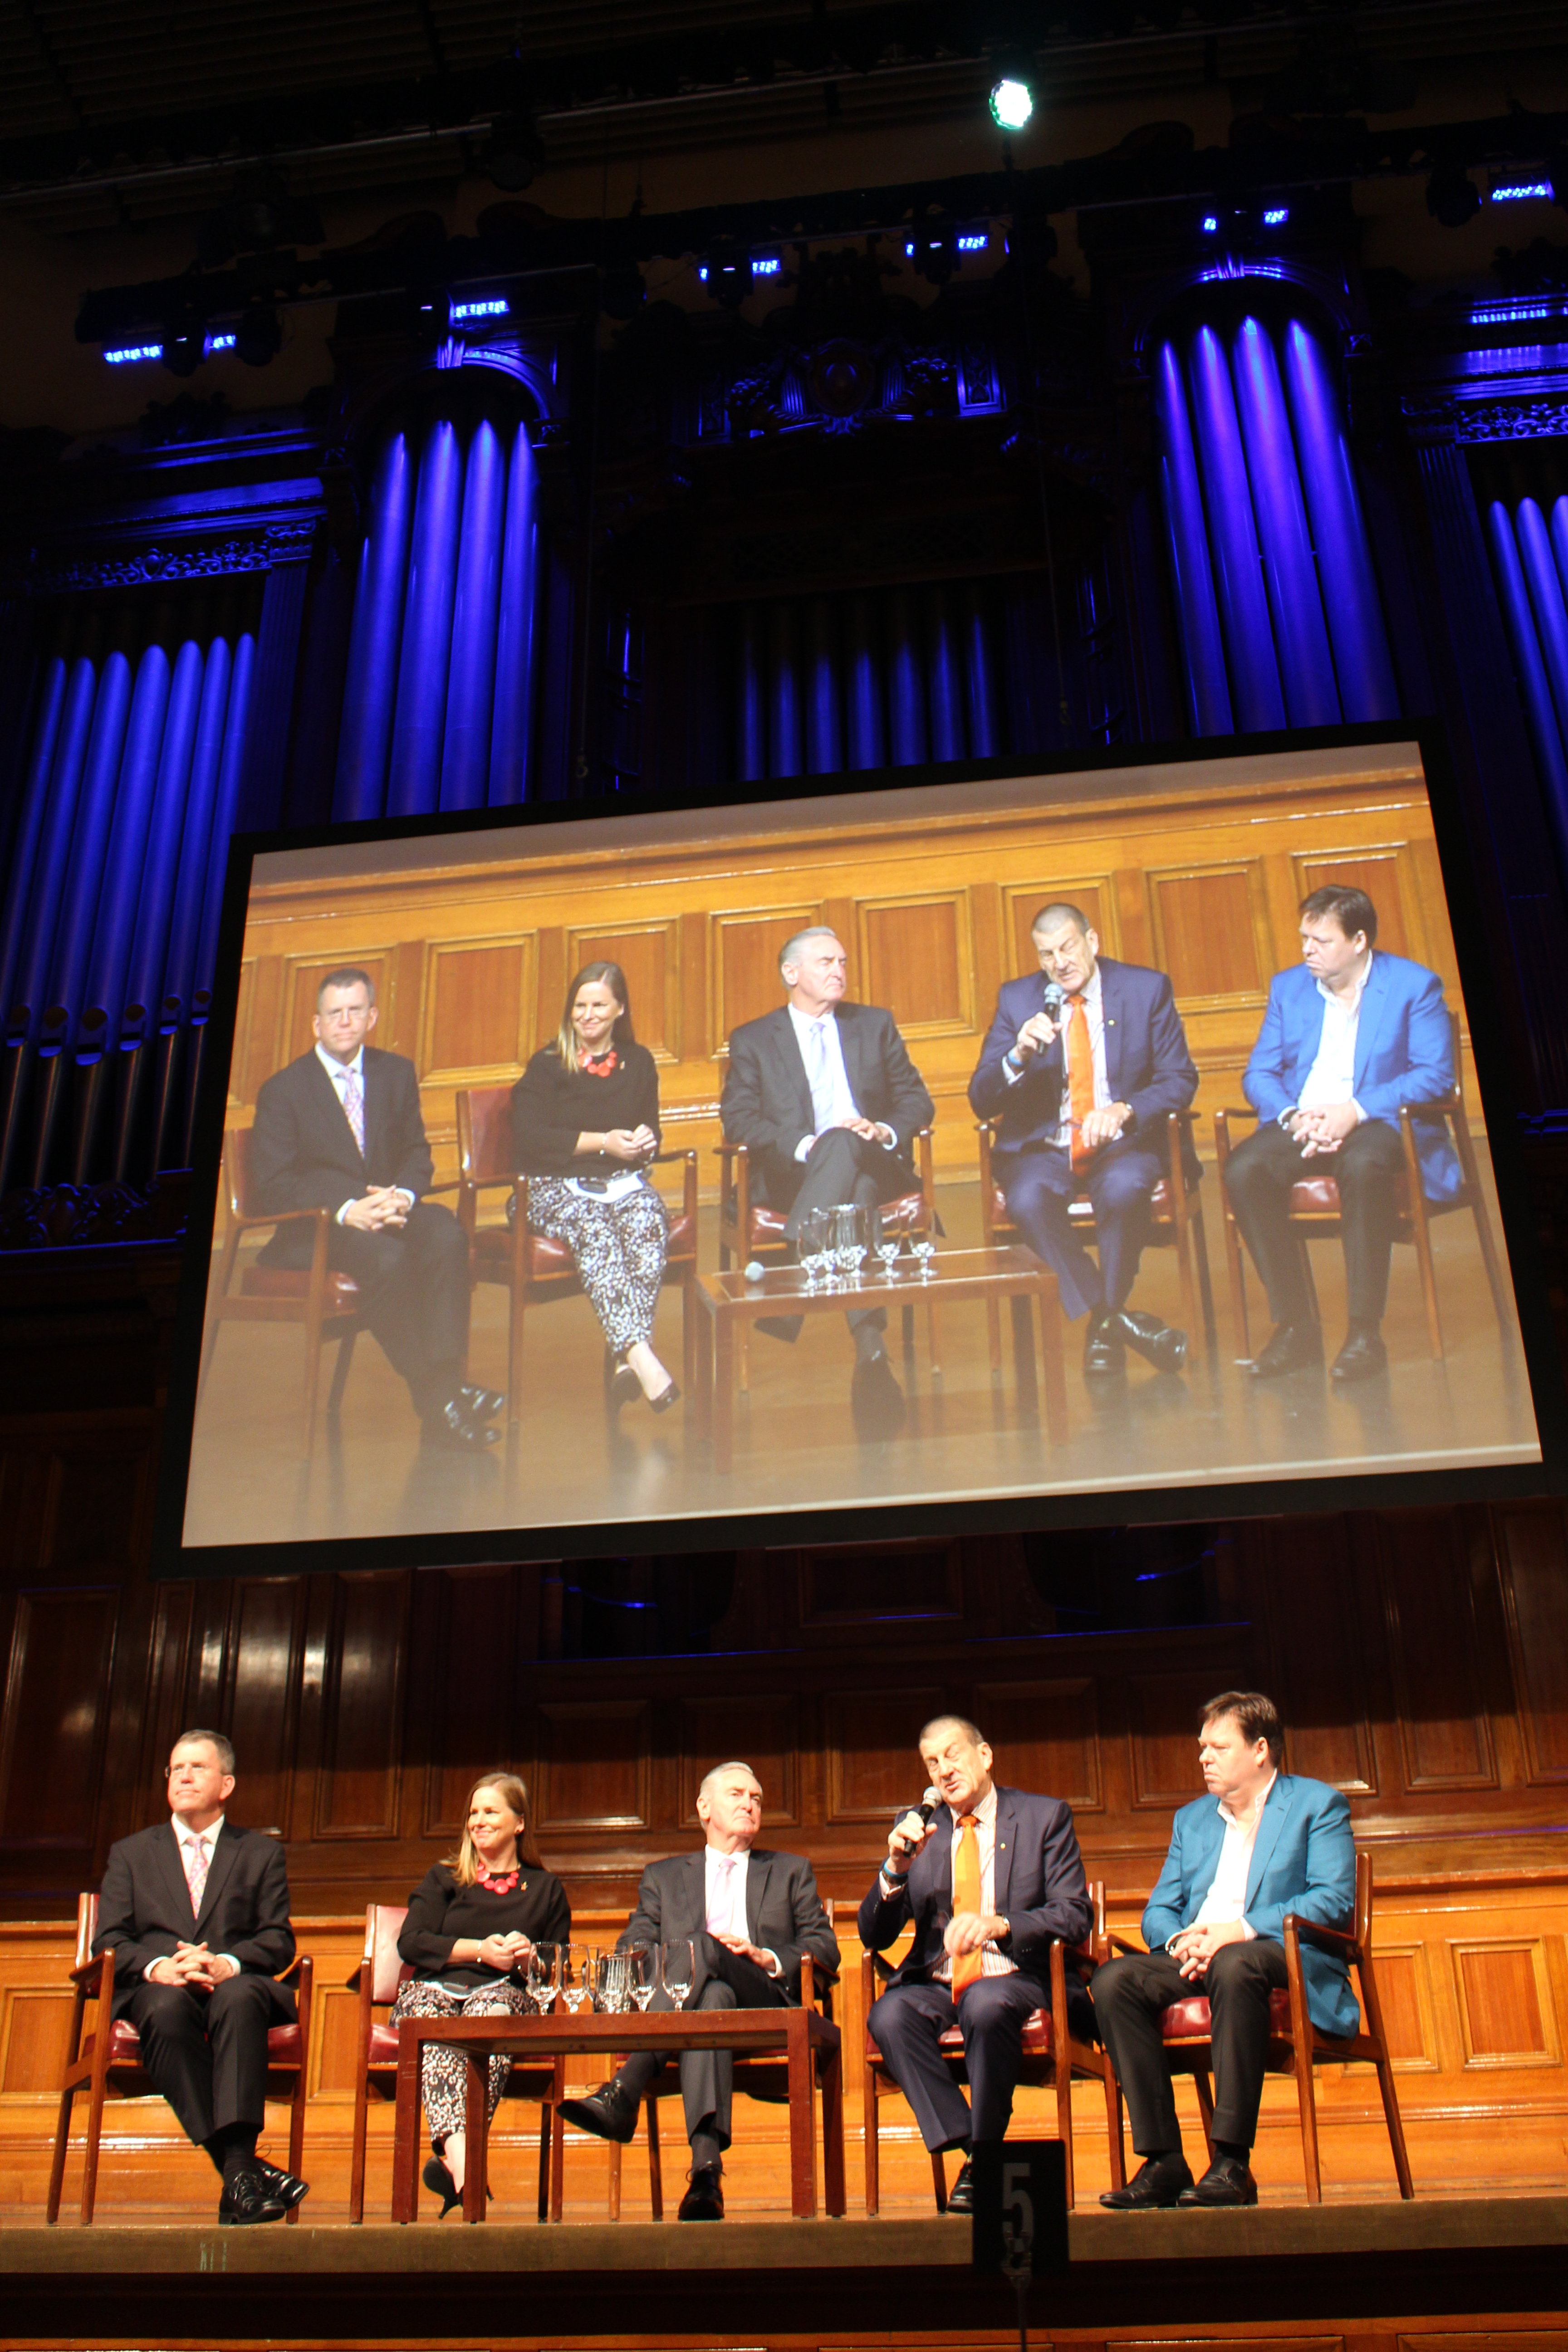 Q&A time at Melbourne Town Hall following the Heads Up workplace breakfast.